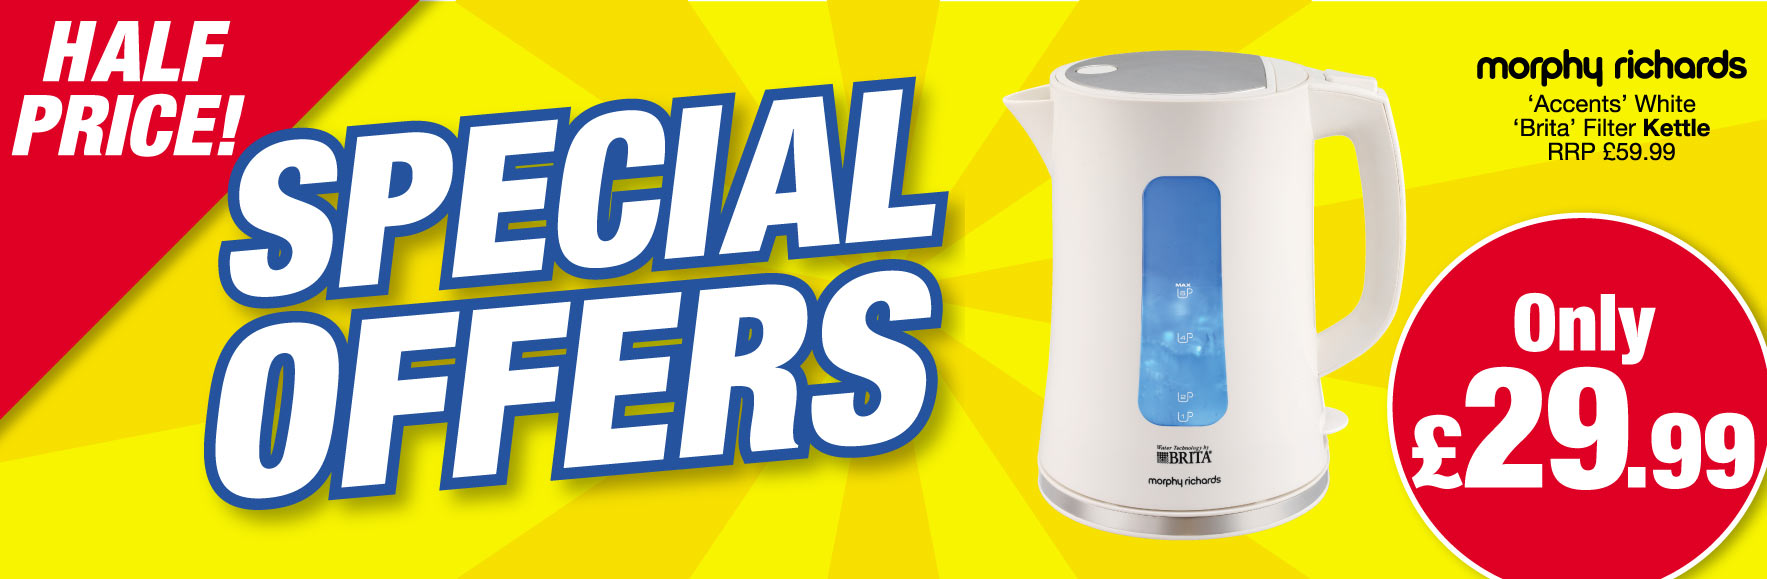 Morphy Richards 'Accents' White 'Brita' Kettle. RRP £59.99 ONLY £29.99